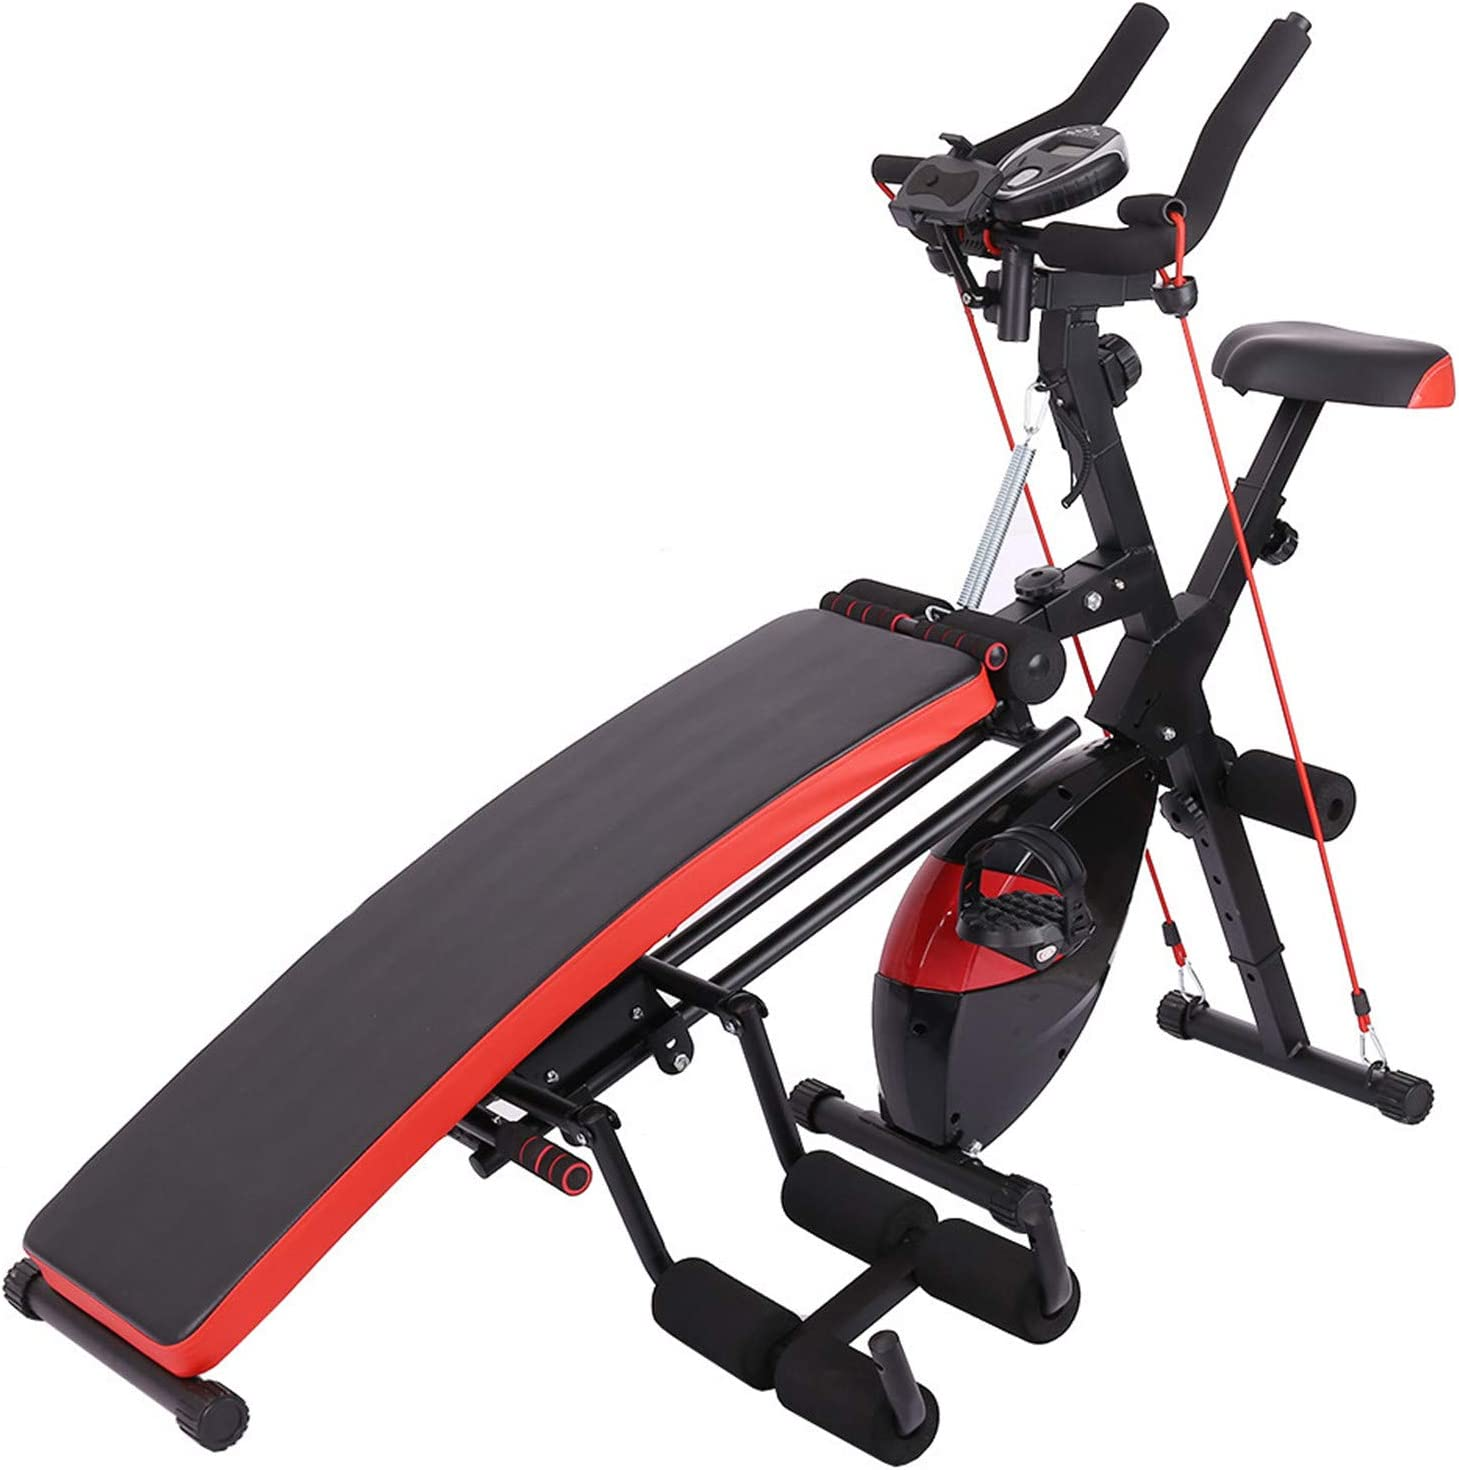 GJCDP Combination Fitness Exercise Indoor Limited time sale Cycling Bike Equipment Super Special SALE held